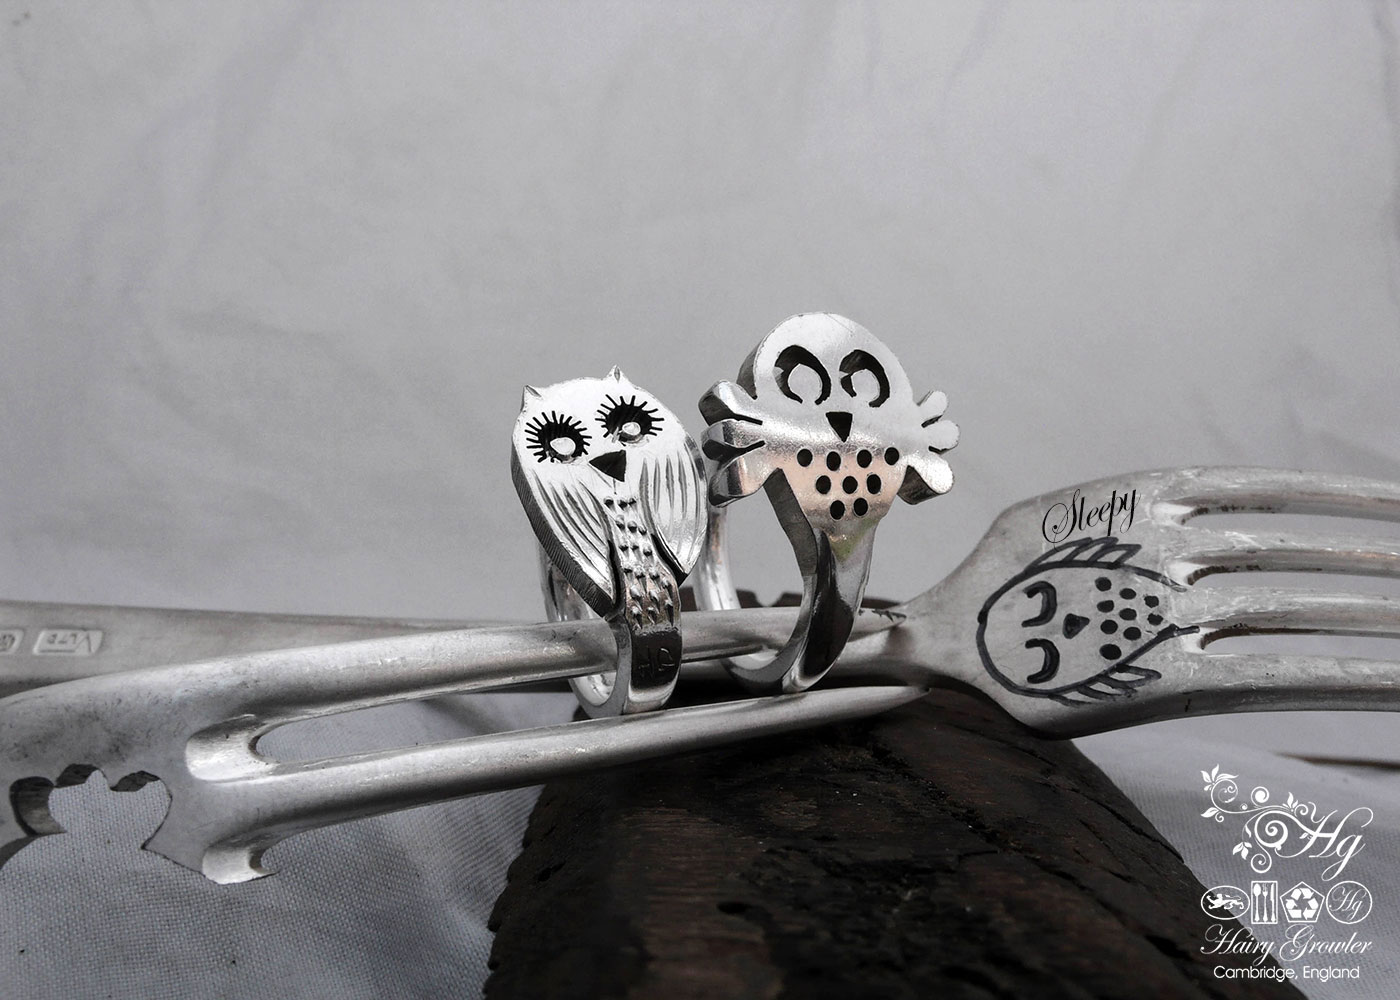 handcrafted and repurposed silver owl rings made from old forks